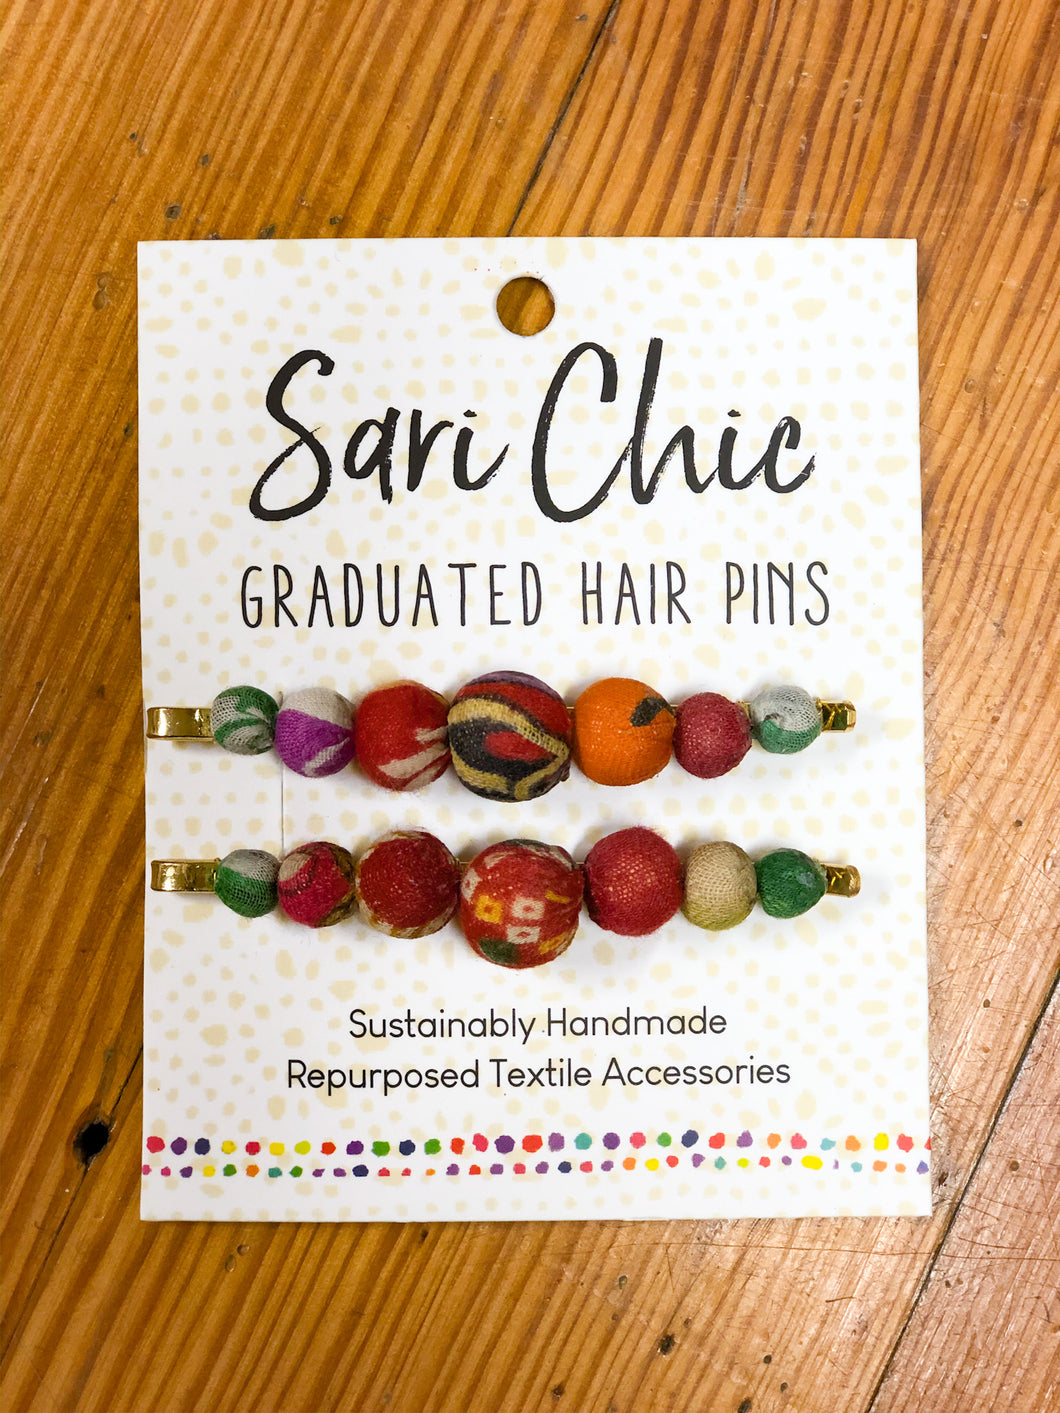 Sari Chic Graduated Hair Pins